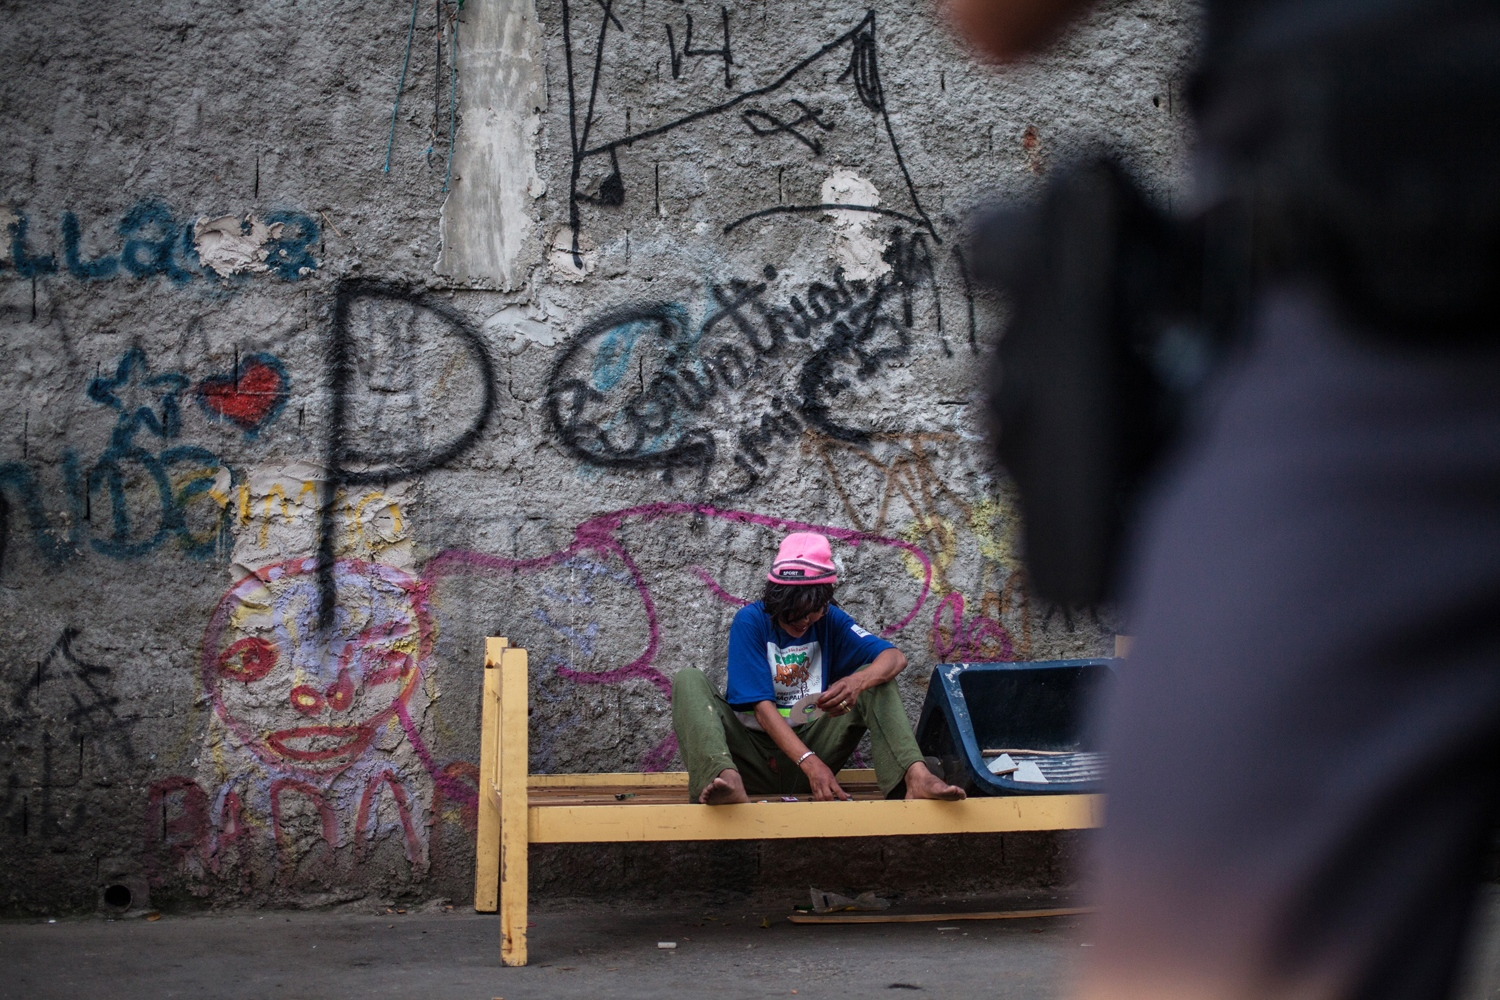 In January of 2014, São Paulo's government set up a harm reduction program called De Braços Abertos (Open Arms). It provides over 400 crack addicts with hotel rooms, janitorial jobs and food without requiring them to leave the drug. An addict who is part of the program sits on a bench while a police officer patrols the area. Most of the people arrested, usually outside the program area, are small-scale traffickers.